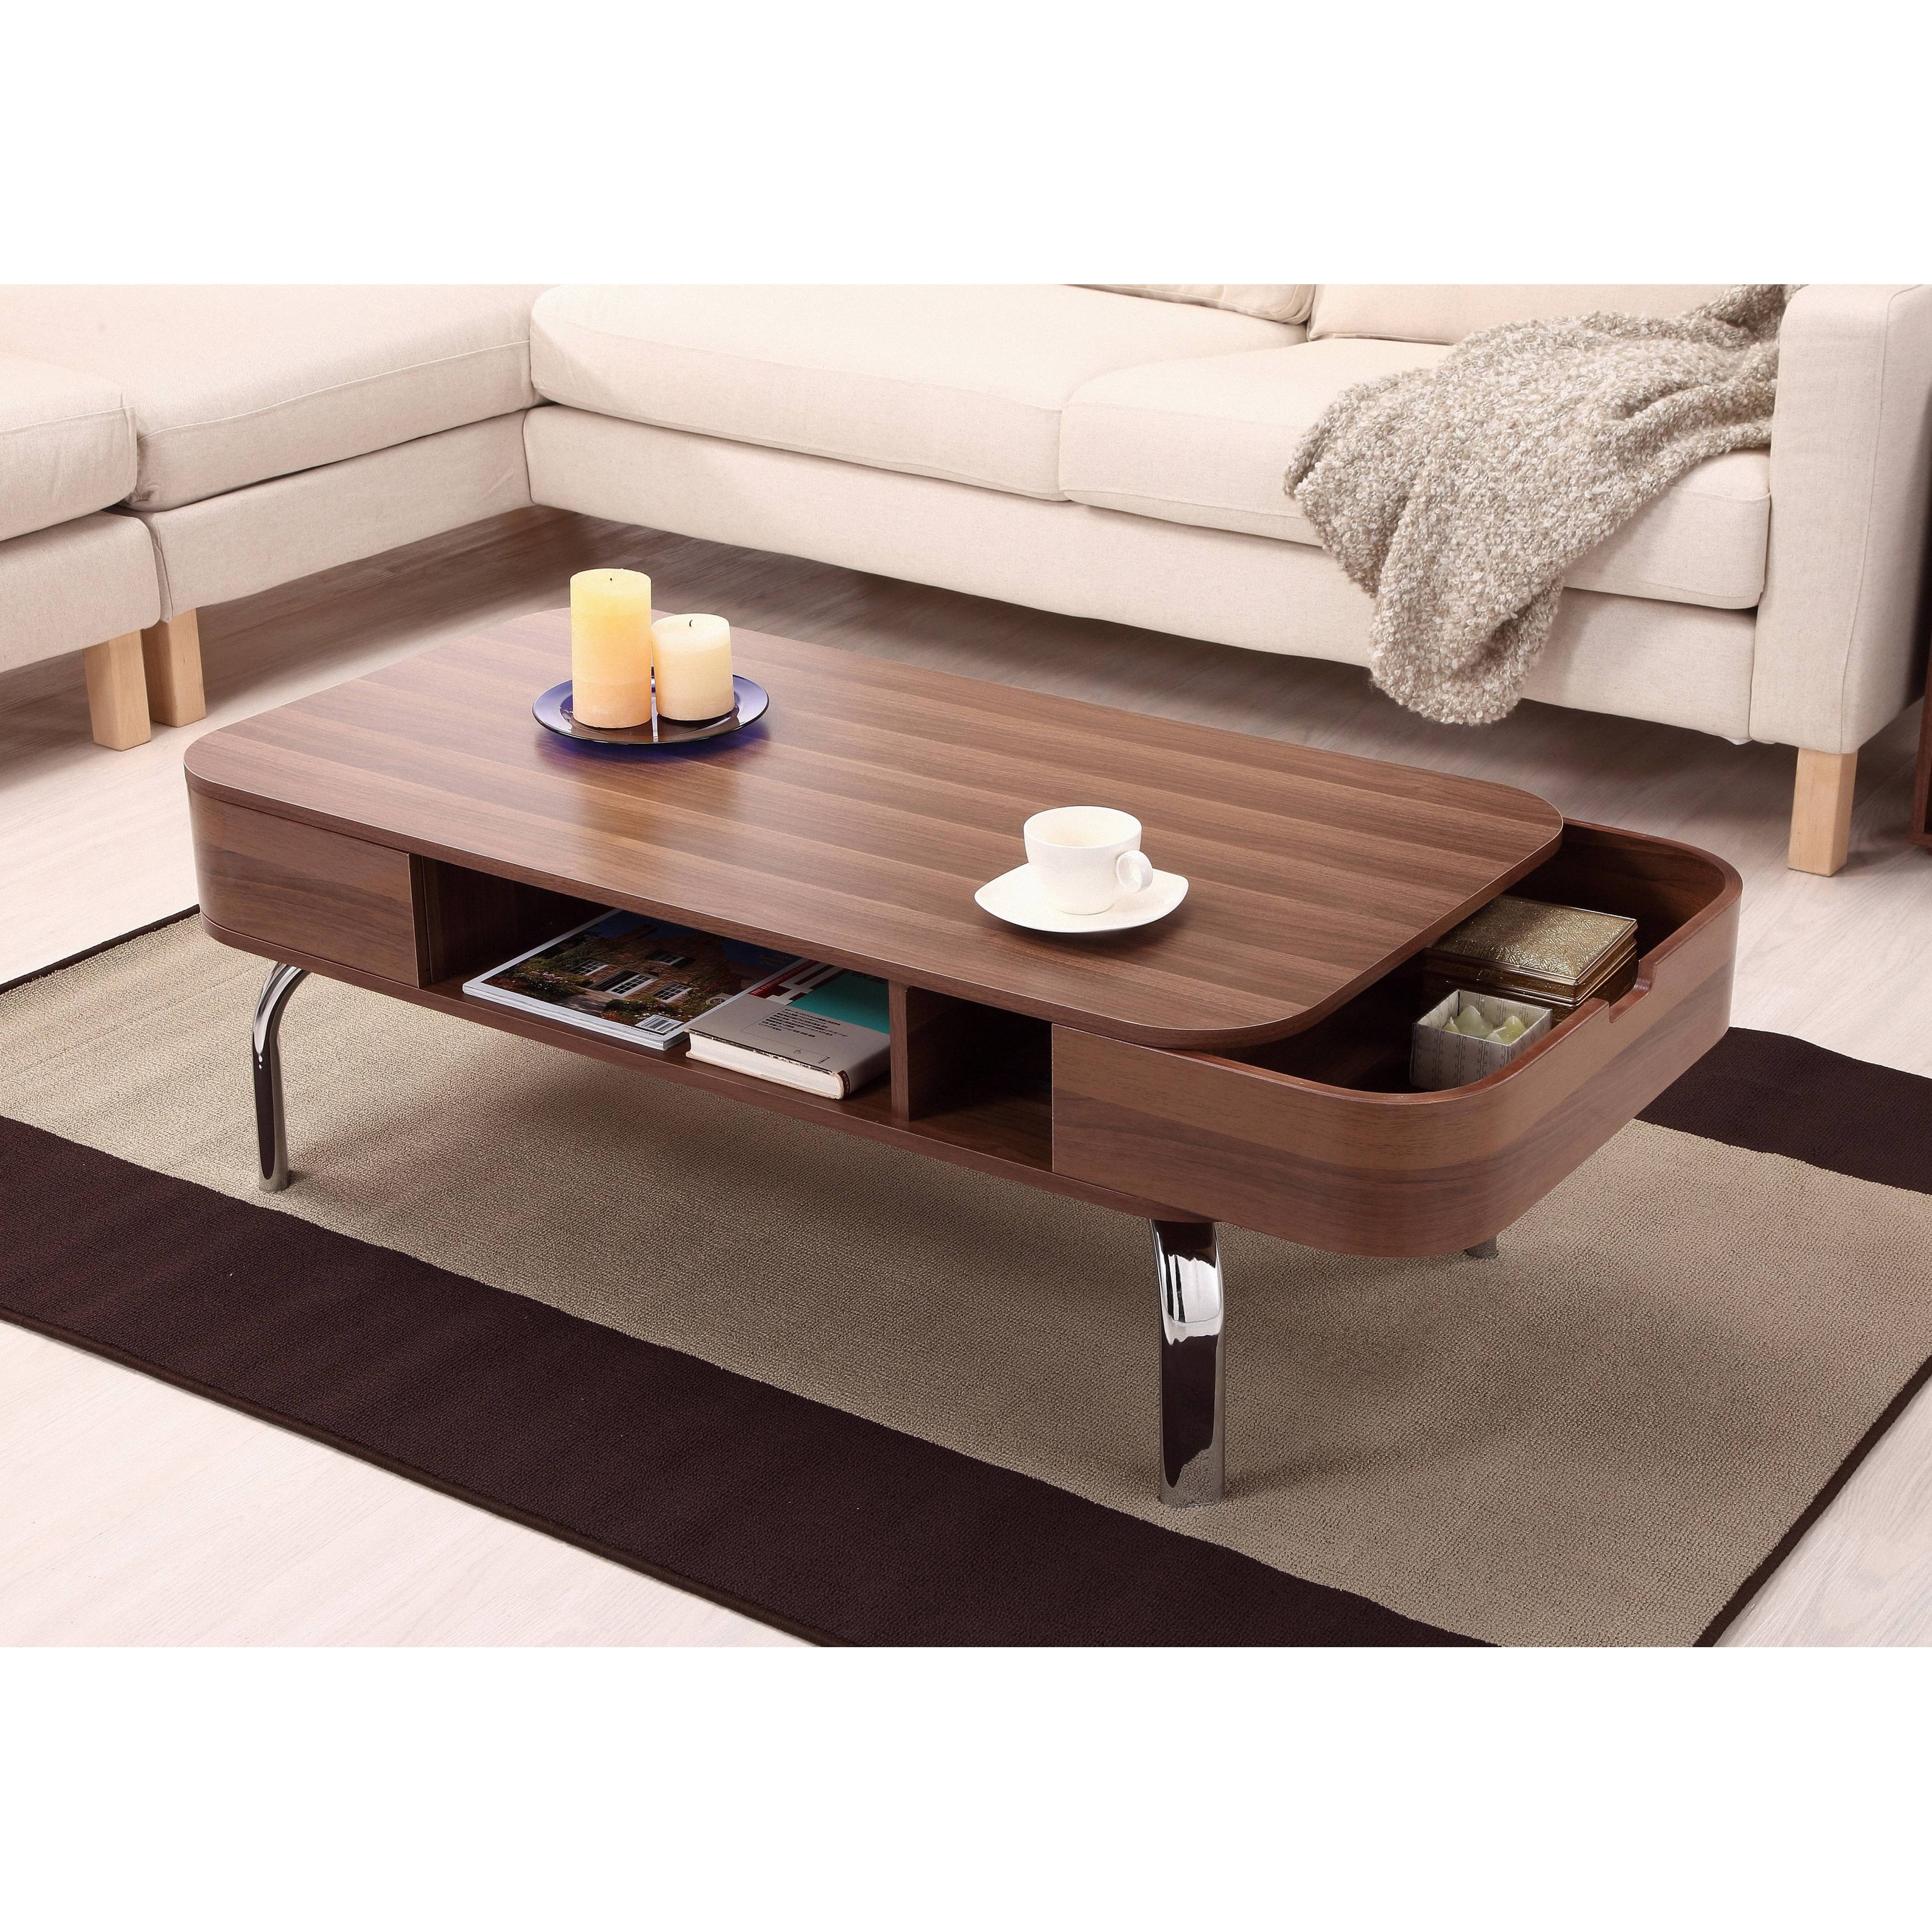 Excellent Coffee Tables With Storage High Def Lollagram Noemi intended for Coffee Tables With Storage (Image 18 of 30)